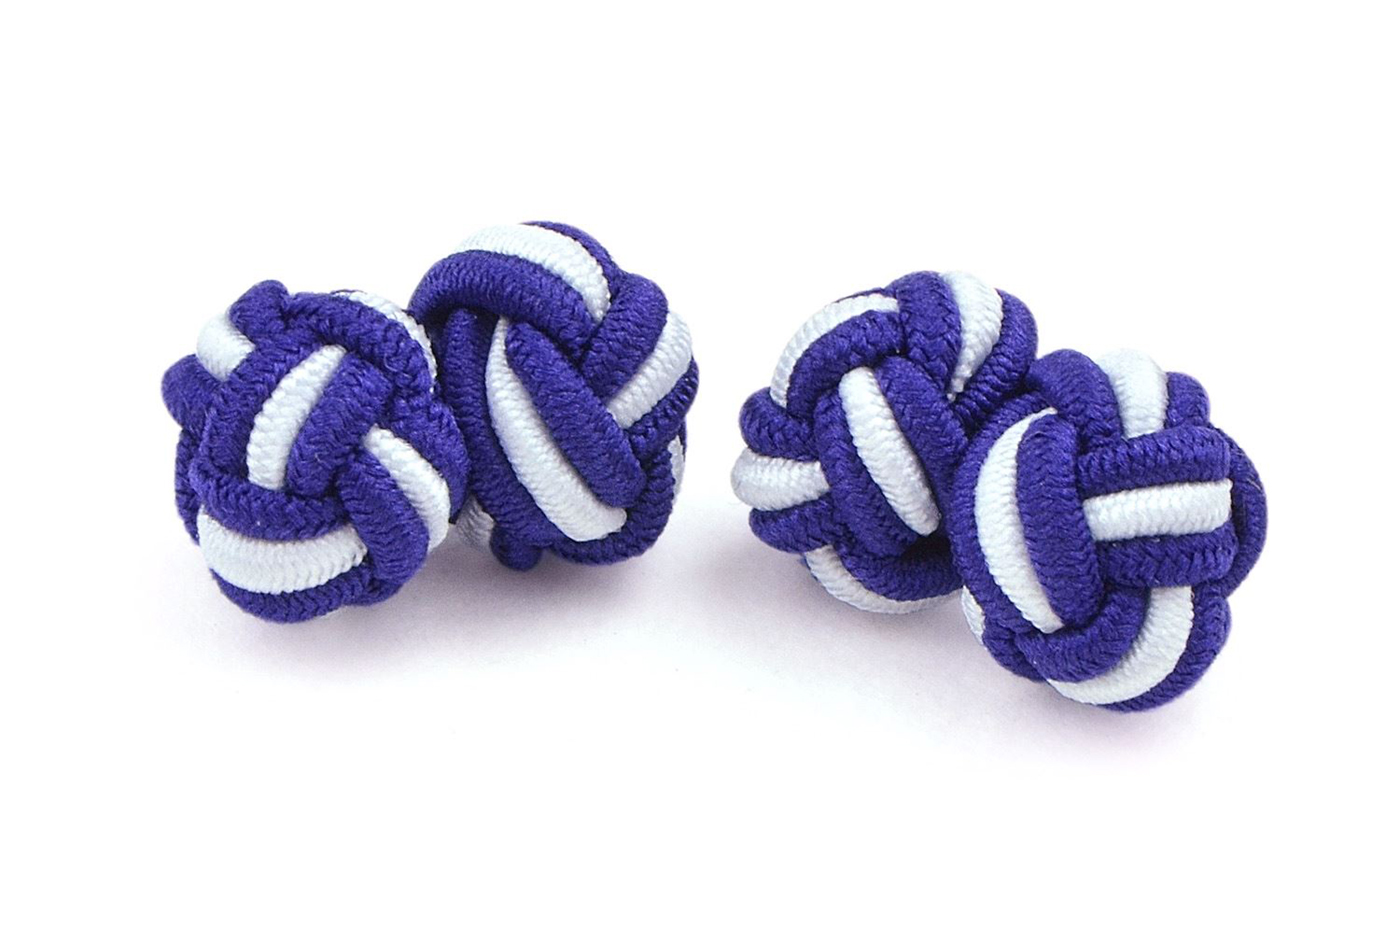 Moda Di Raza- Mens Shirt Cufflinks Silk Knot Designer Cuff links French Cuffs - Eggplant